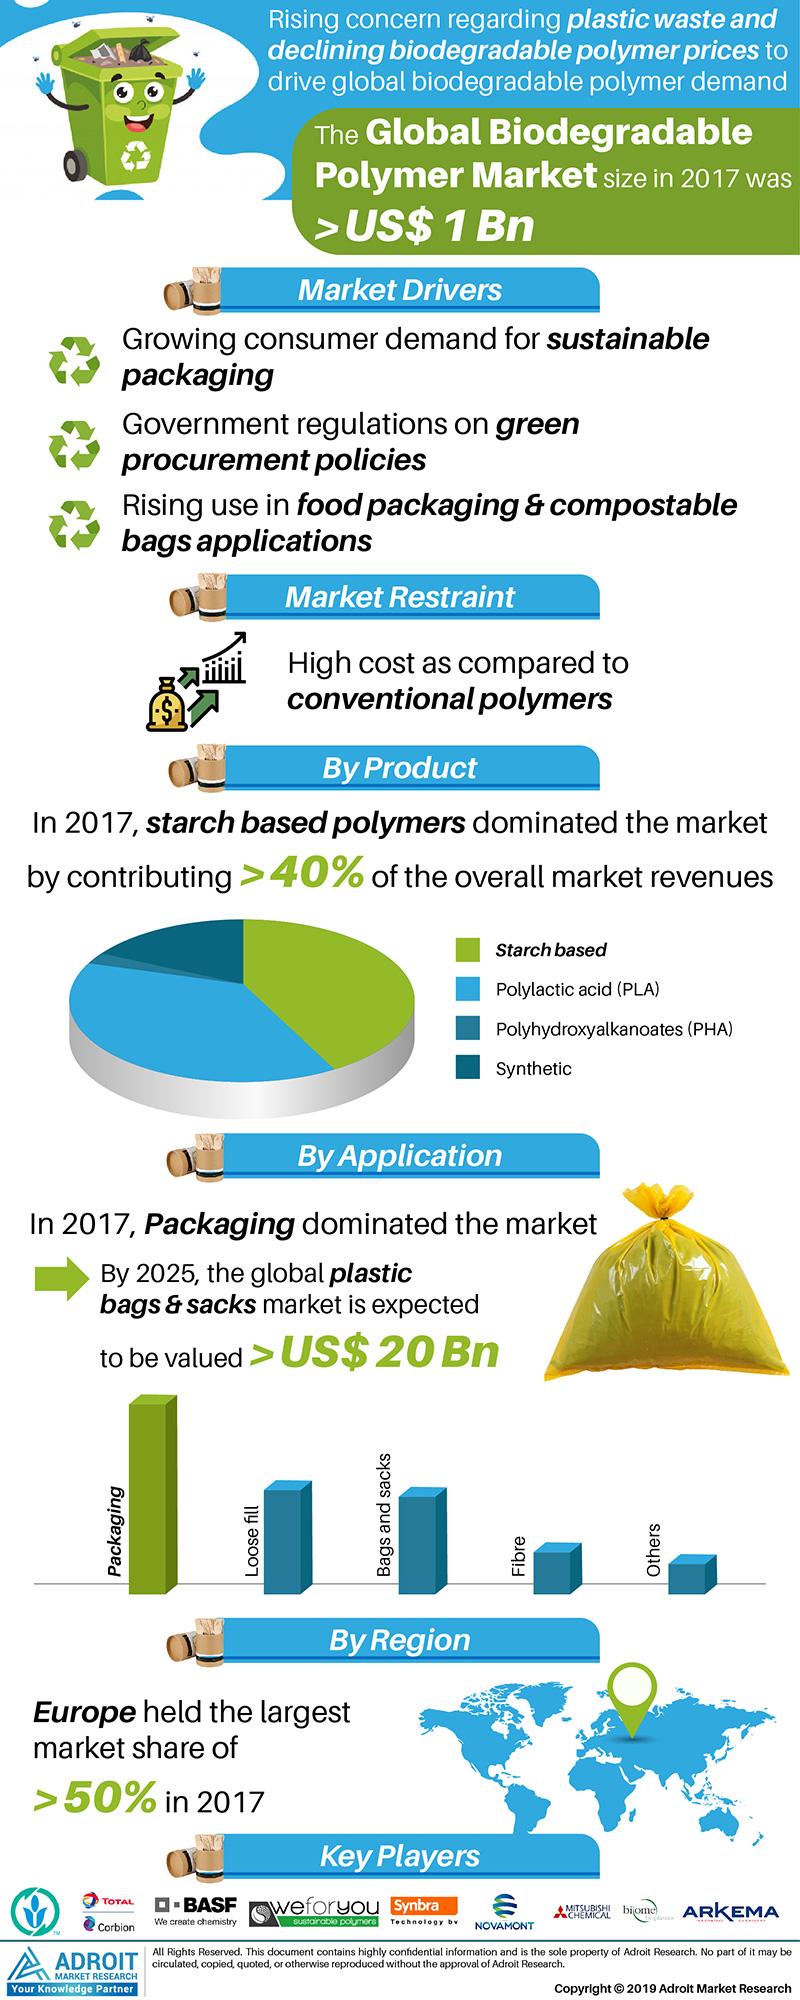 Global Biodegradable Polymer Market Size 2017 By Production, Application, Region and Forecast 2018 to 2025